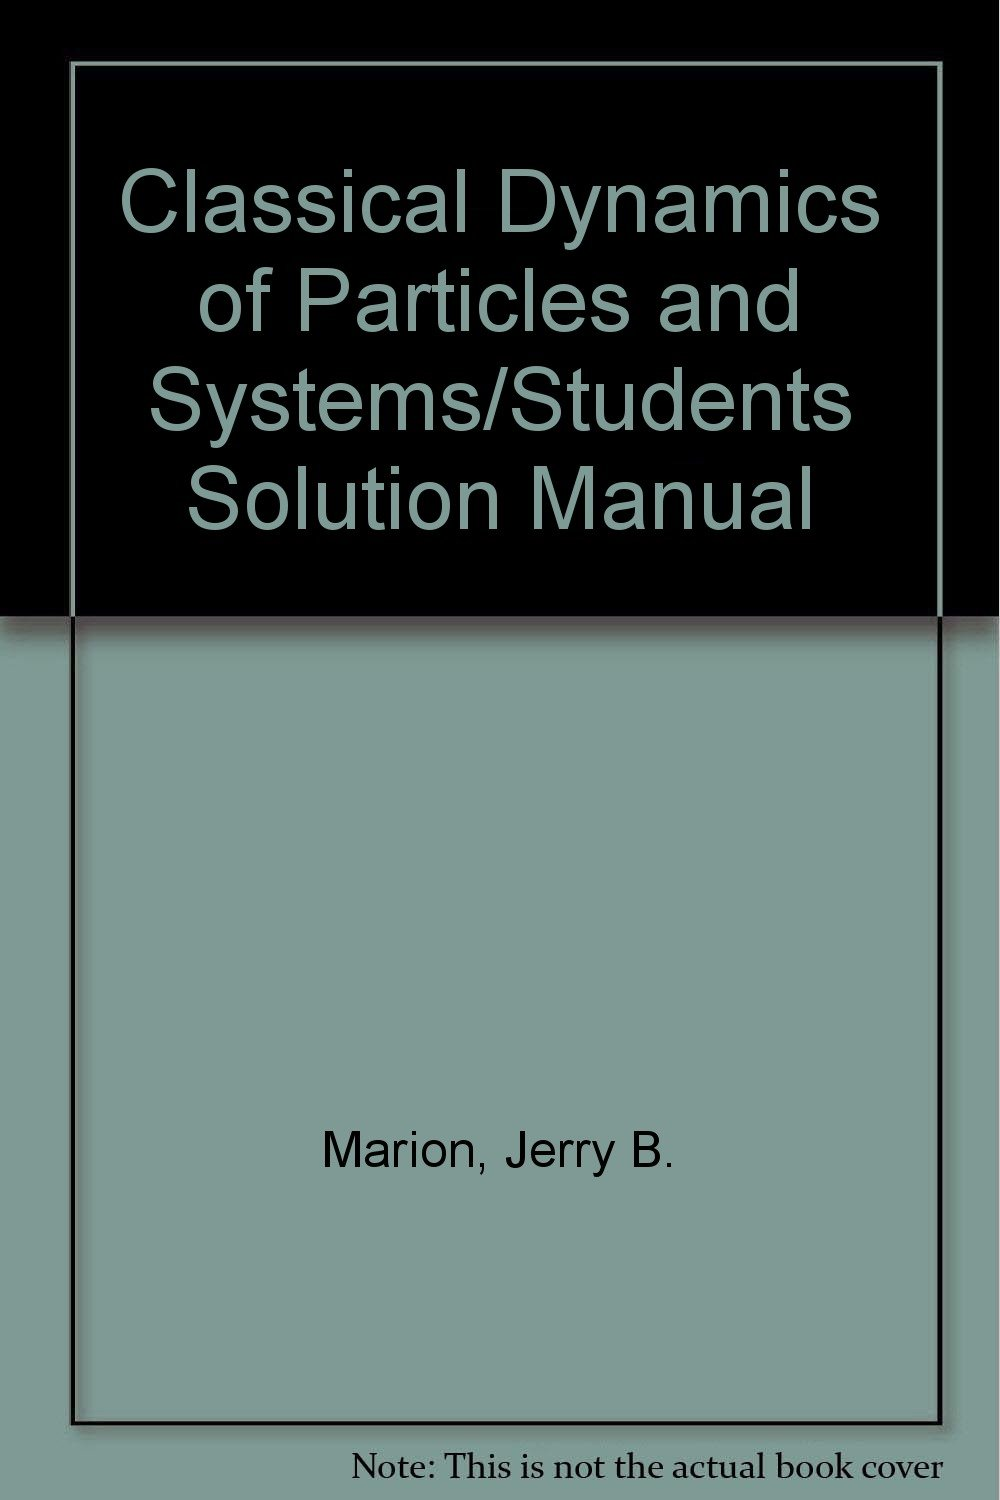 Classical Dynamics of Particles and Systems/Students Solution Manual:  Amazon.co.uk: Jerry B. Marion, Stephen T. Thornton: 9780155076426: Books